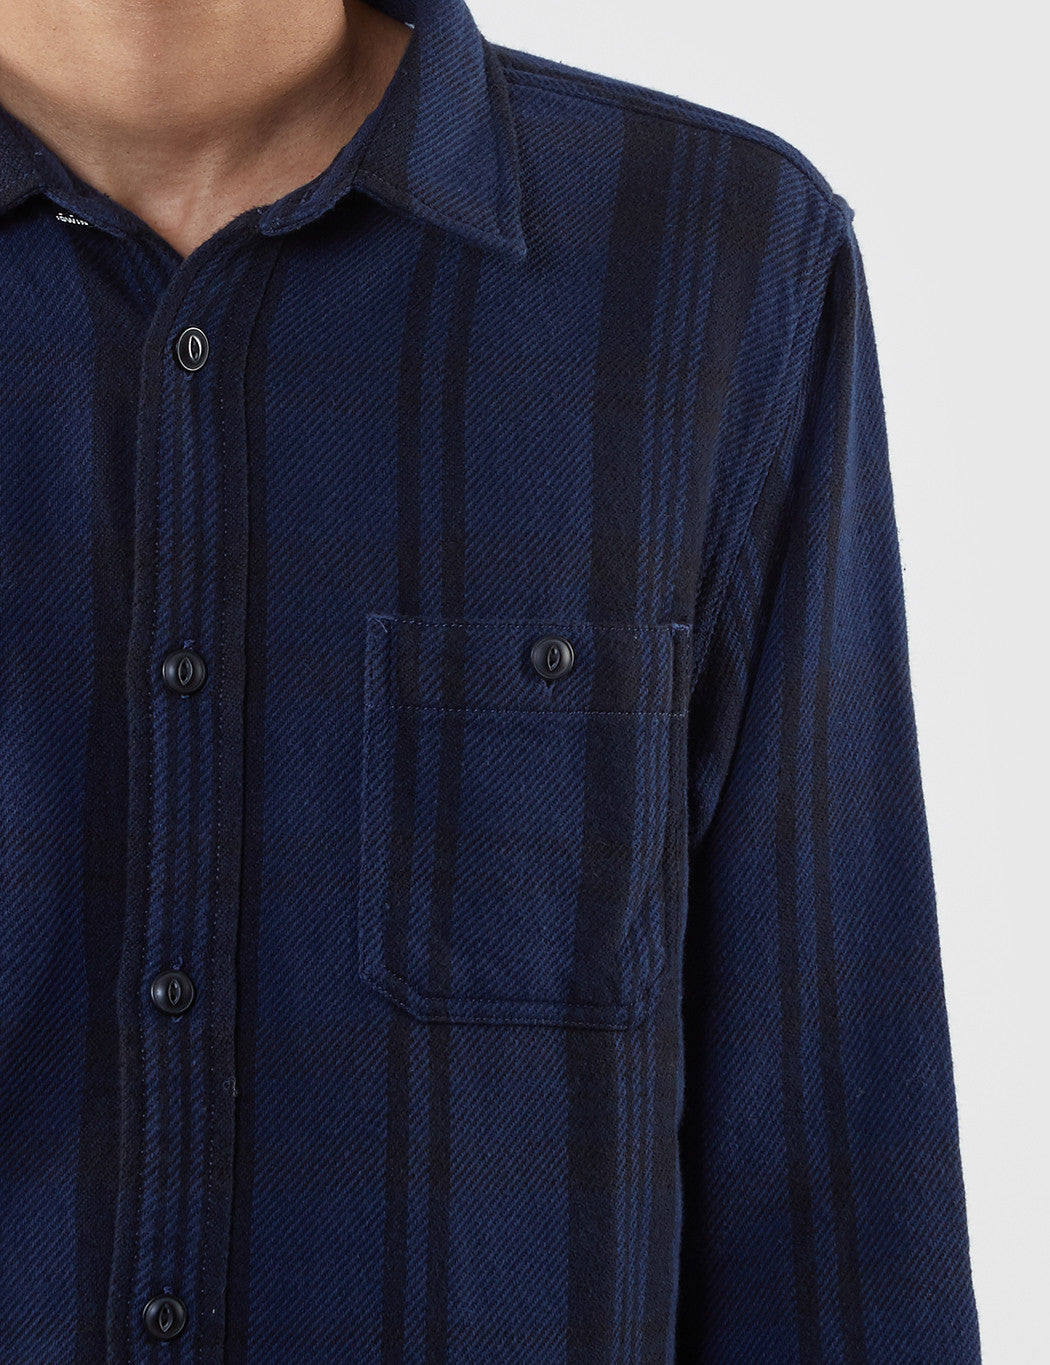 Edwin Labour Checked Shirt - Navy/Black